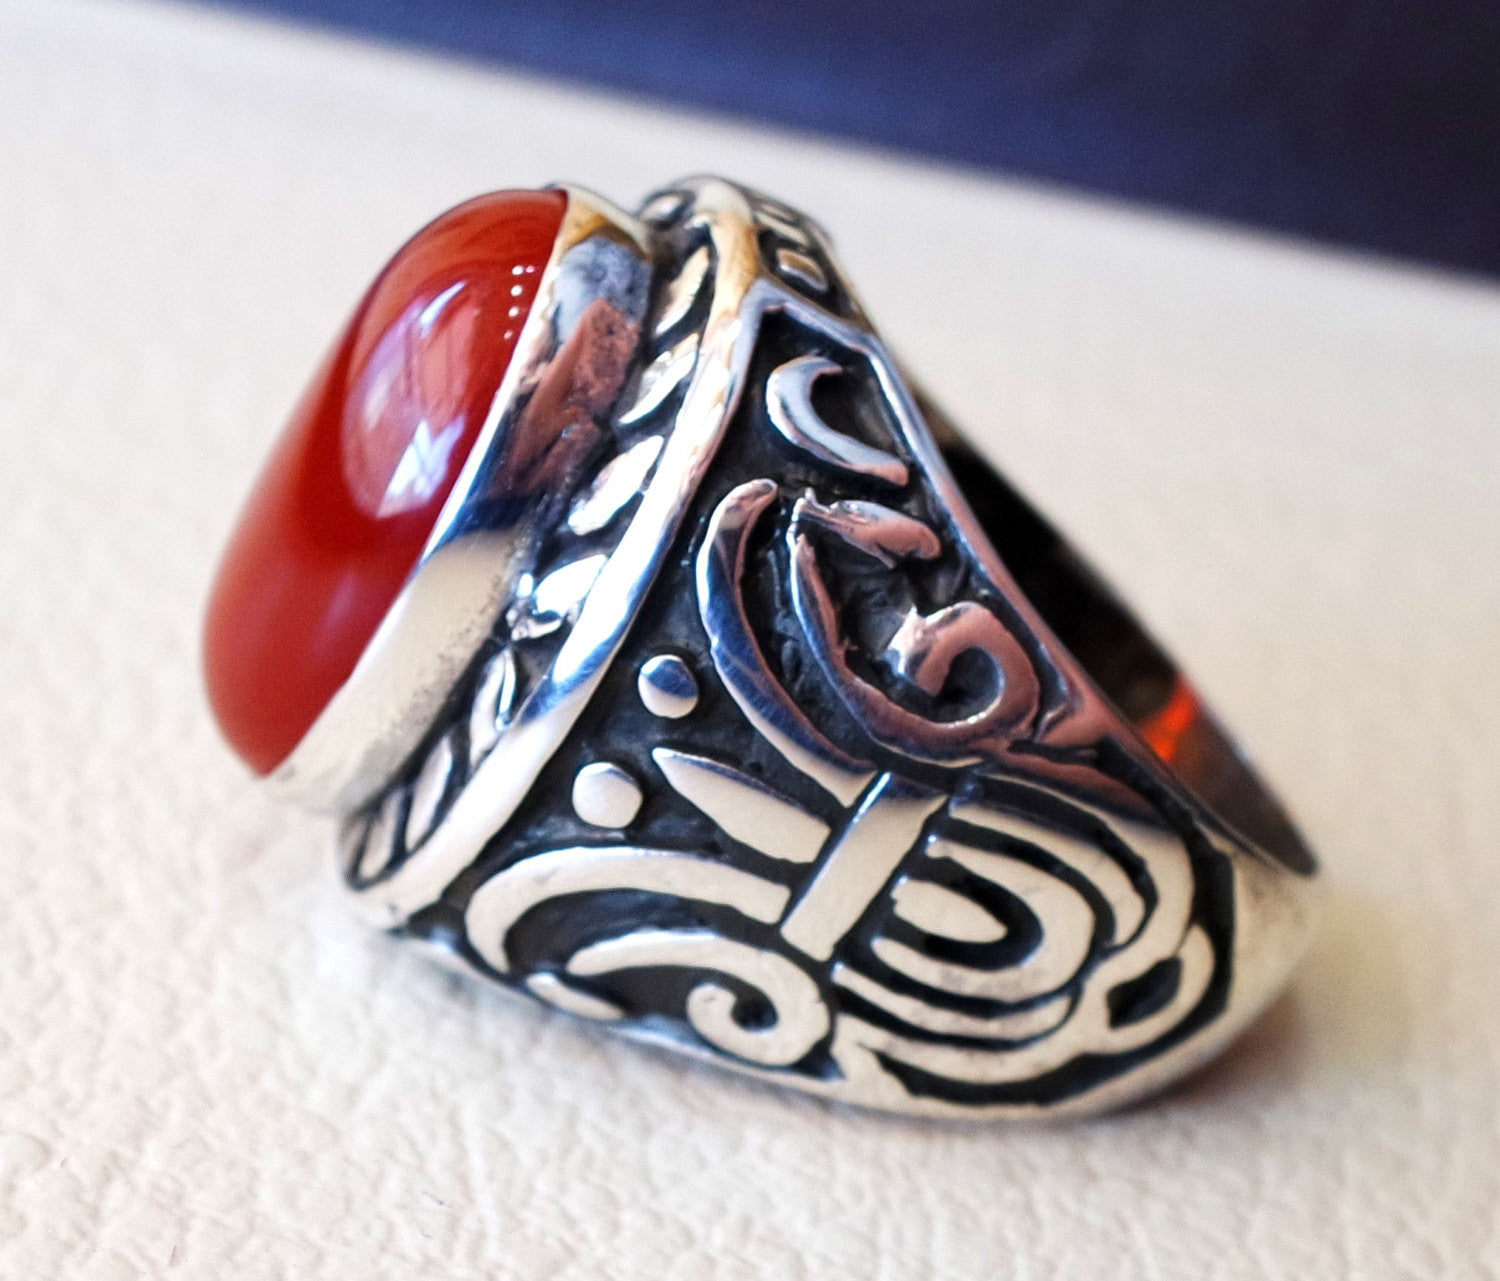 huge liver agate carnelian yemeni aqeeq ring sterling silver 925 dark red semi precious natural gemstone men jewelry any size middle eastern